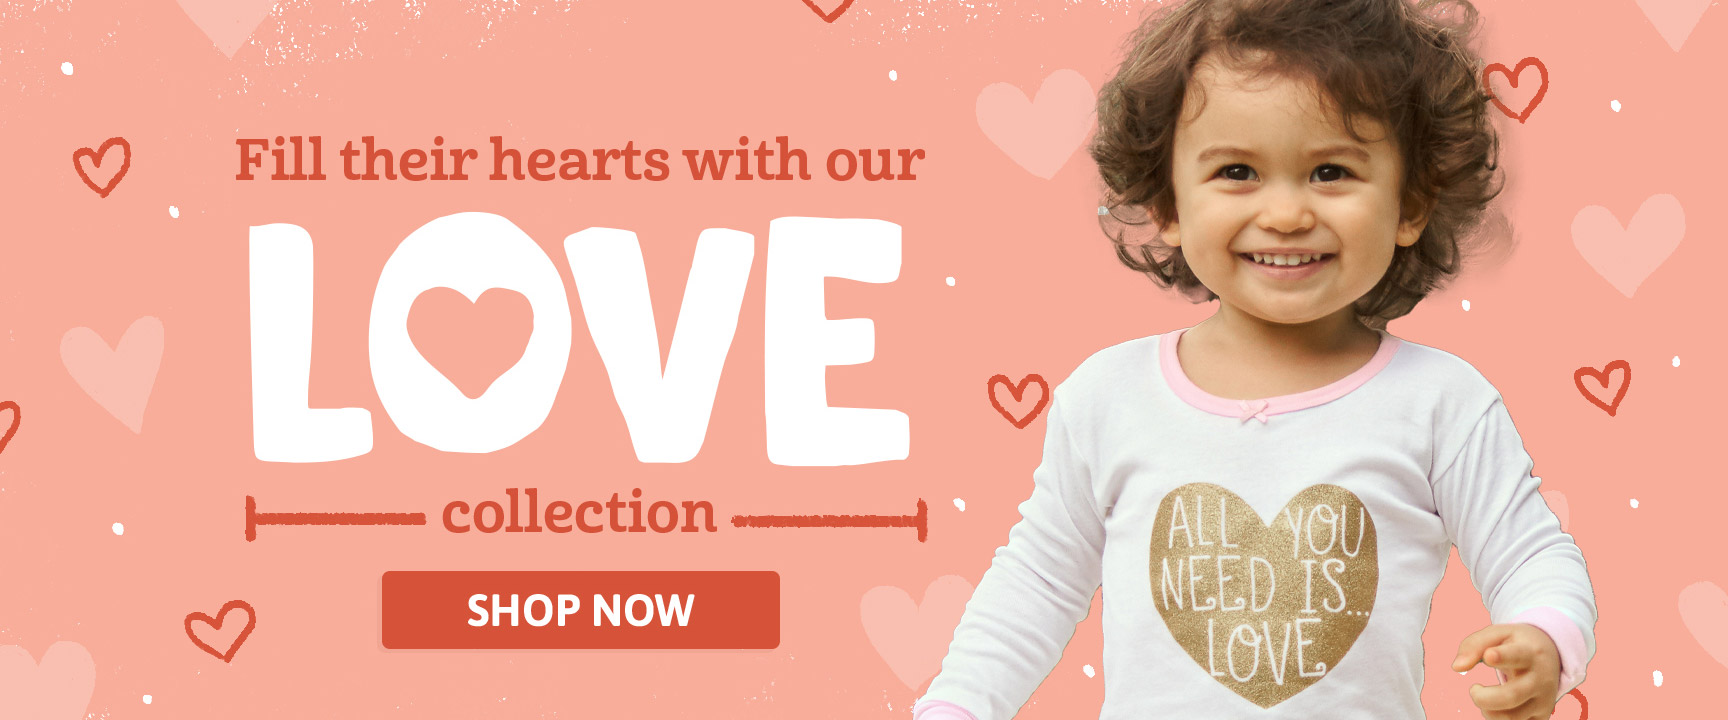 Gerber Childrenswear Ombre Collection